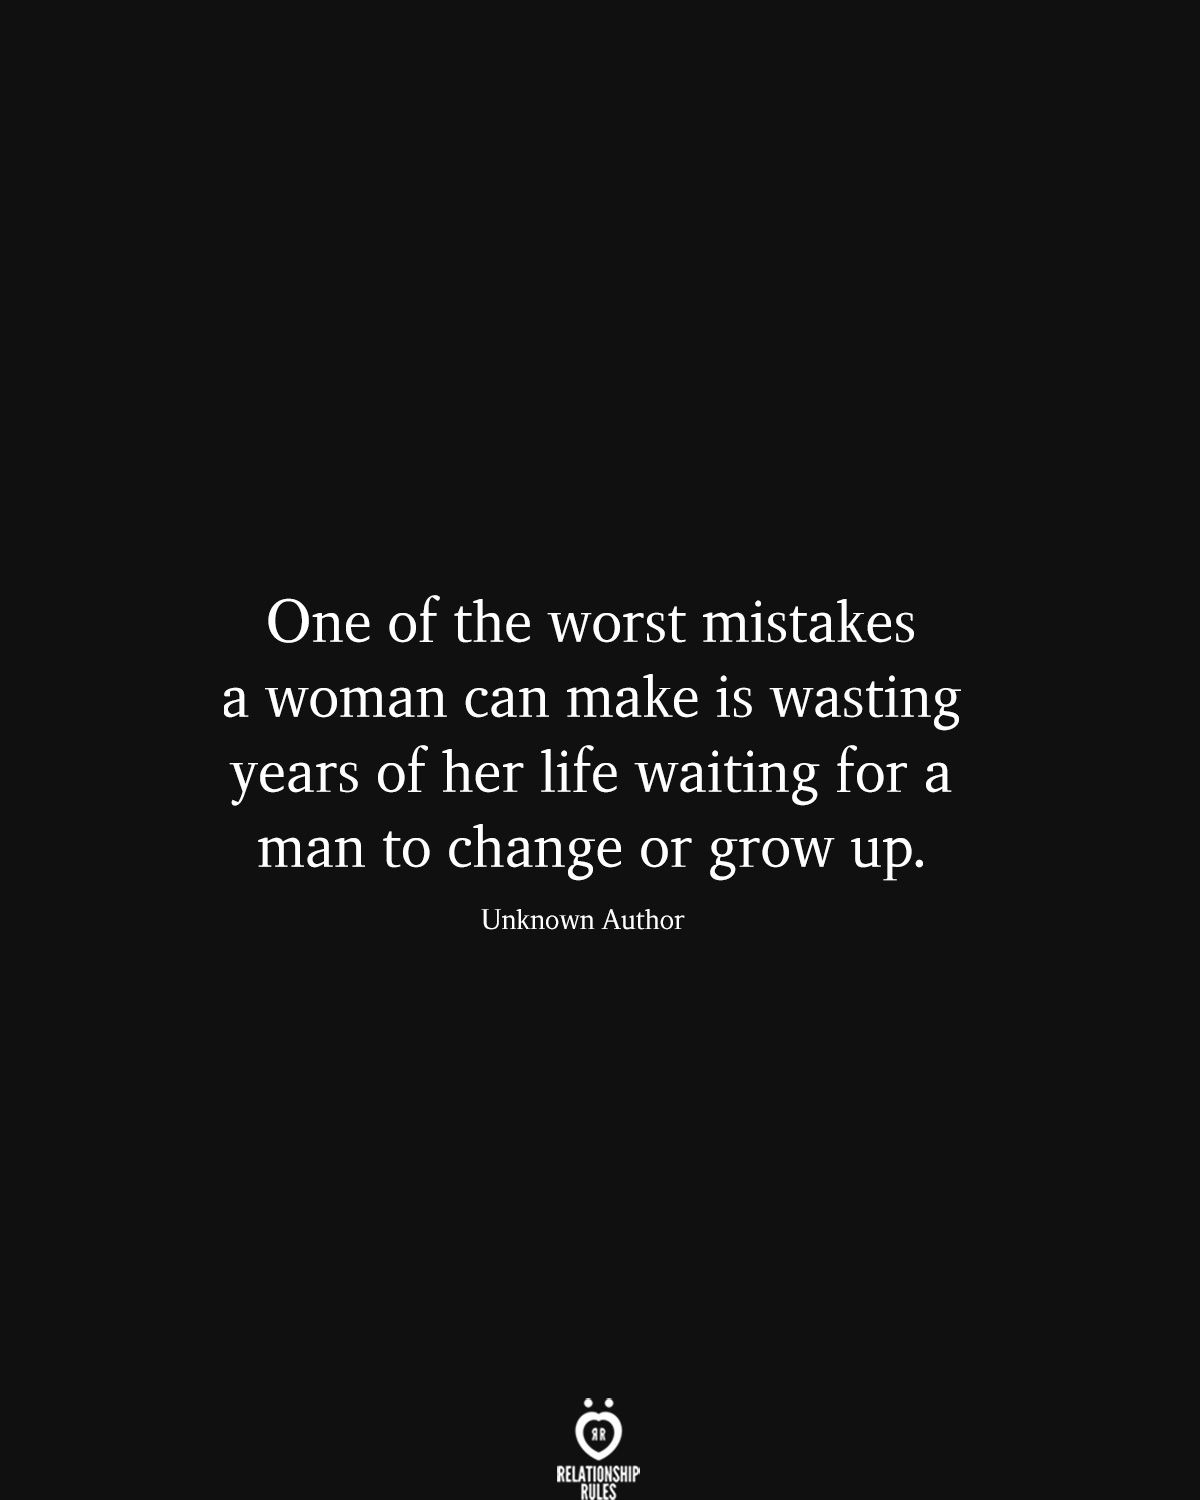 One Of The Worst Mistakes A Woman Can Make Is Wasting Years Of Her Life